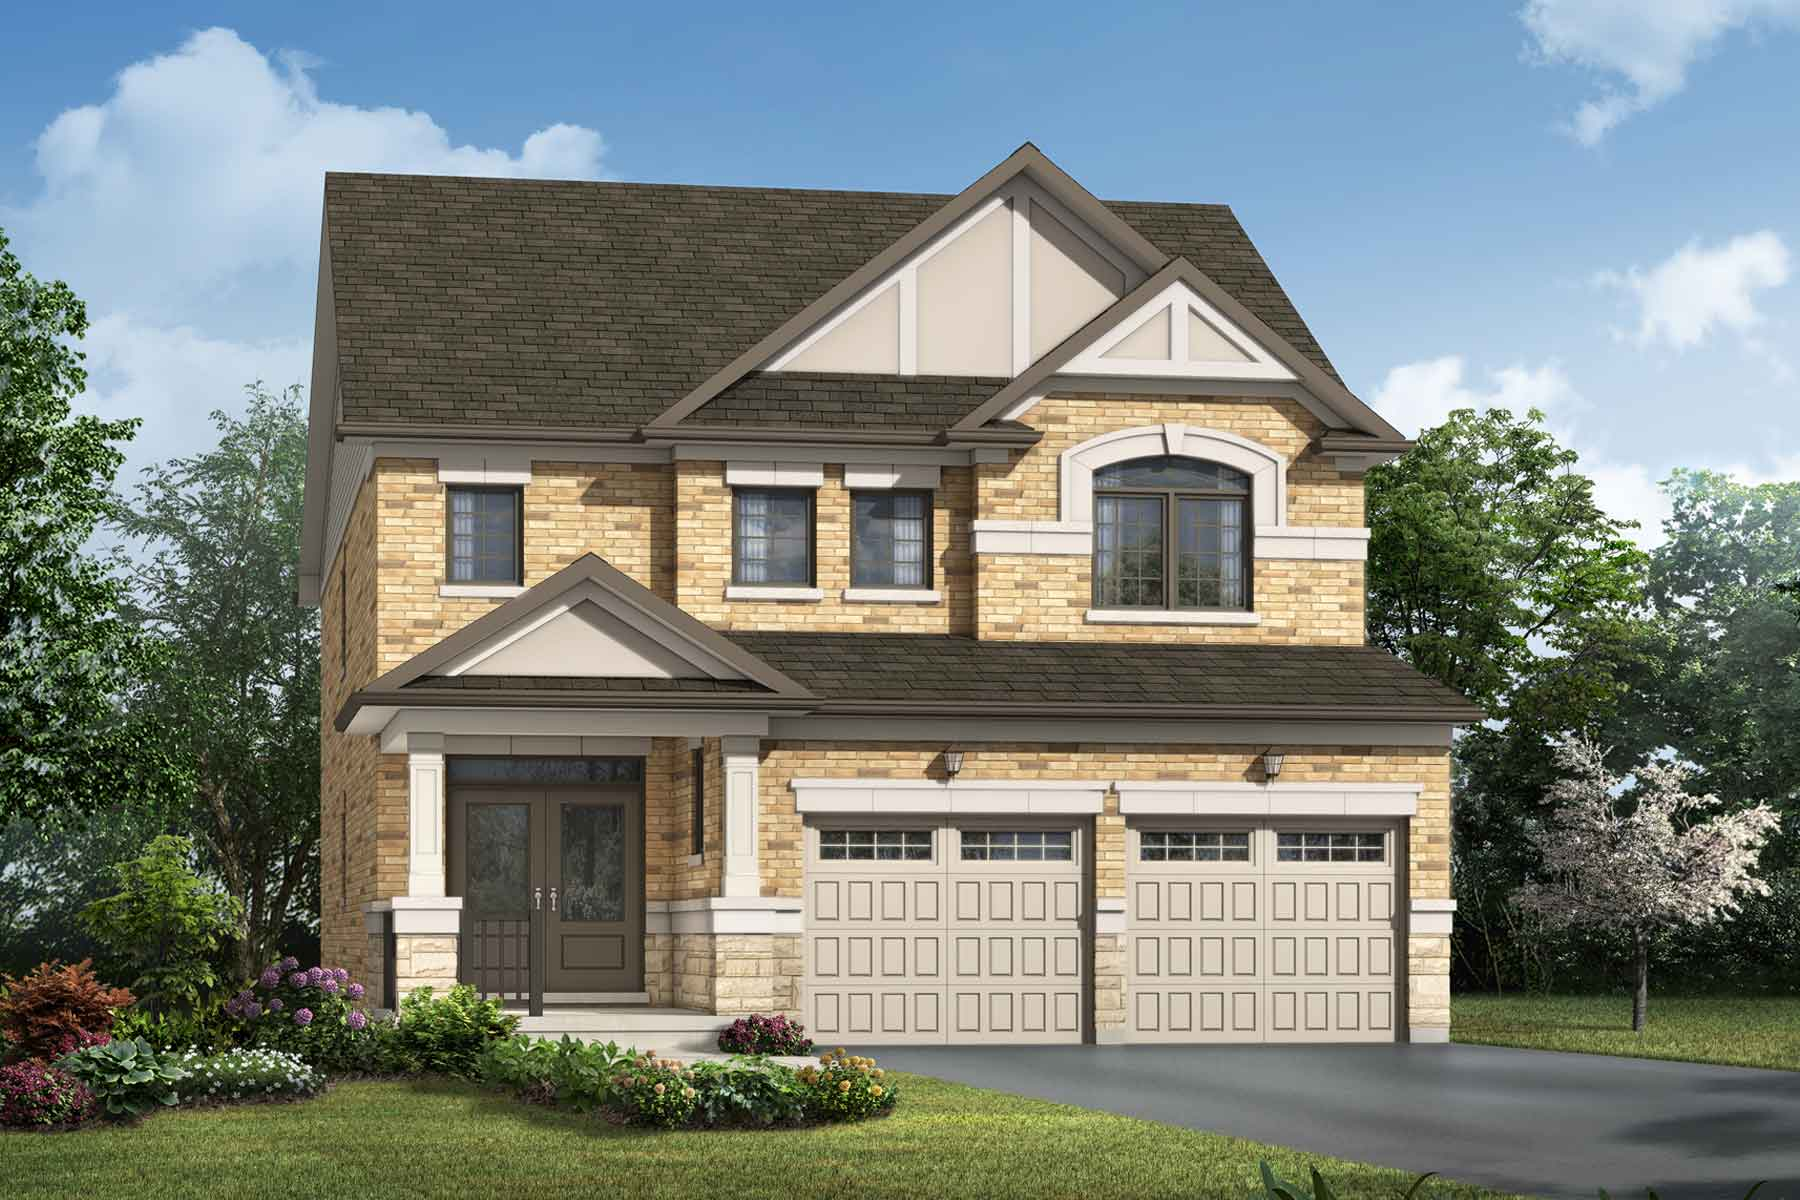 Amberlee Plan traditional_seatonwhitevale_amberlee_main at Seaton Whitevale in Pickering Ontario by Mattamy Homes